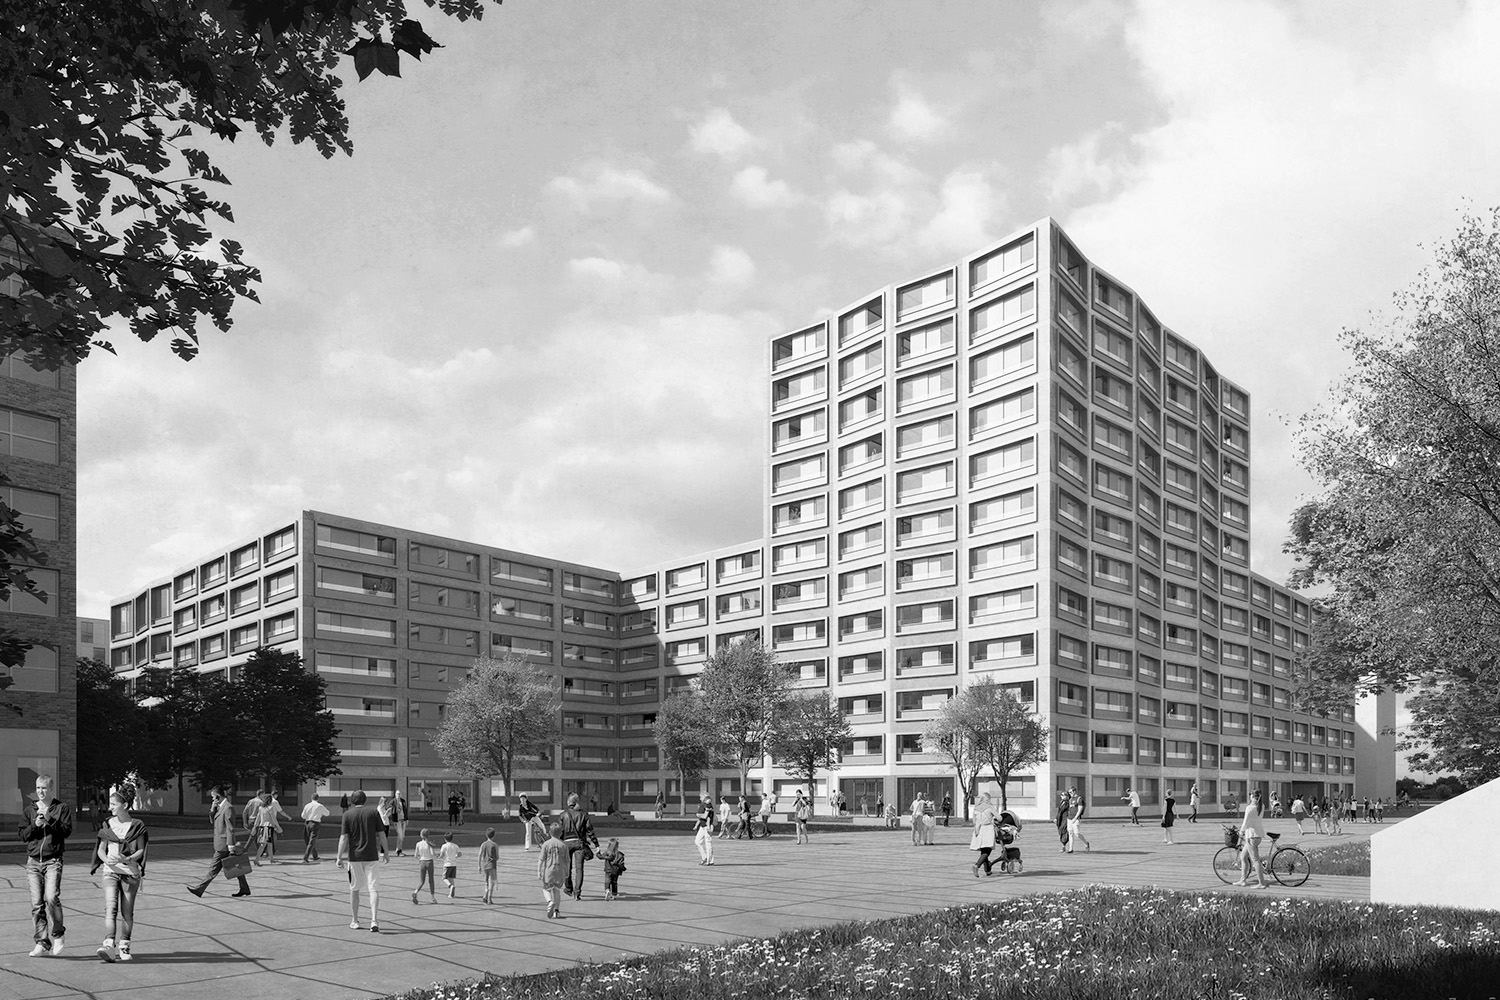 wohnbebauungheidestraseberlin_featuredimage_schenkersalviweberarchitekten_009